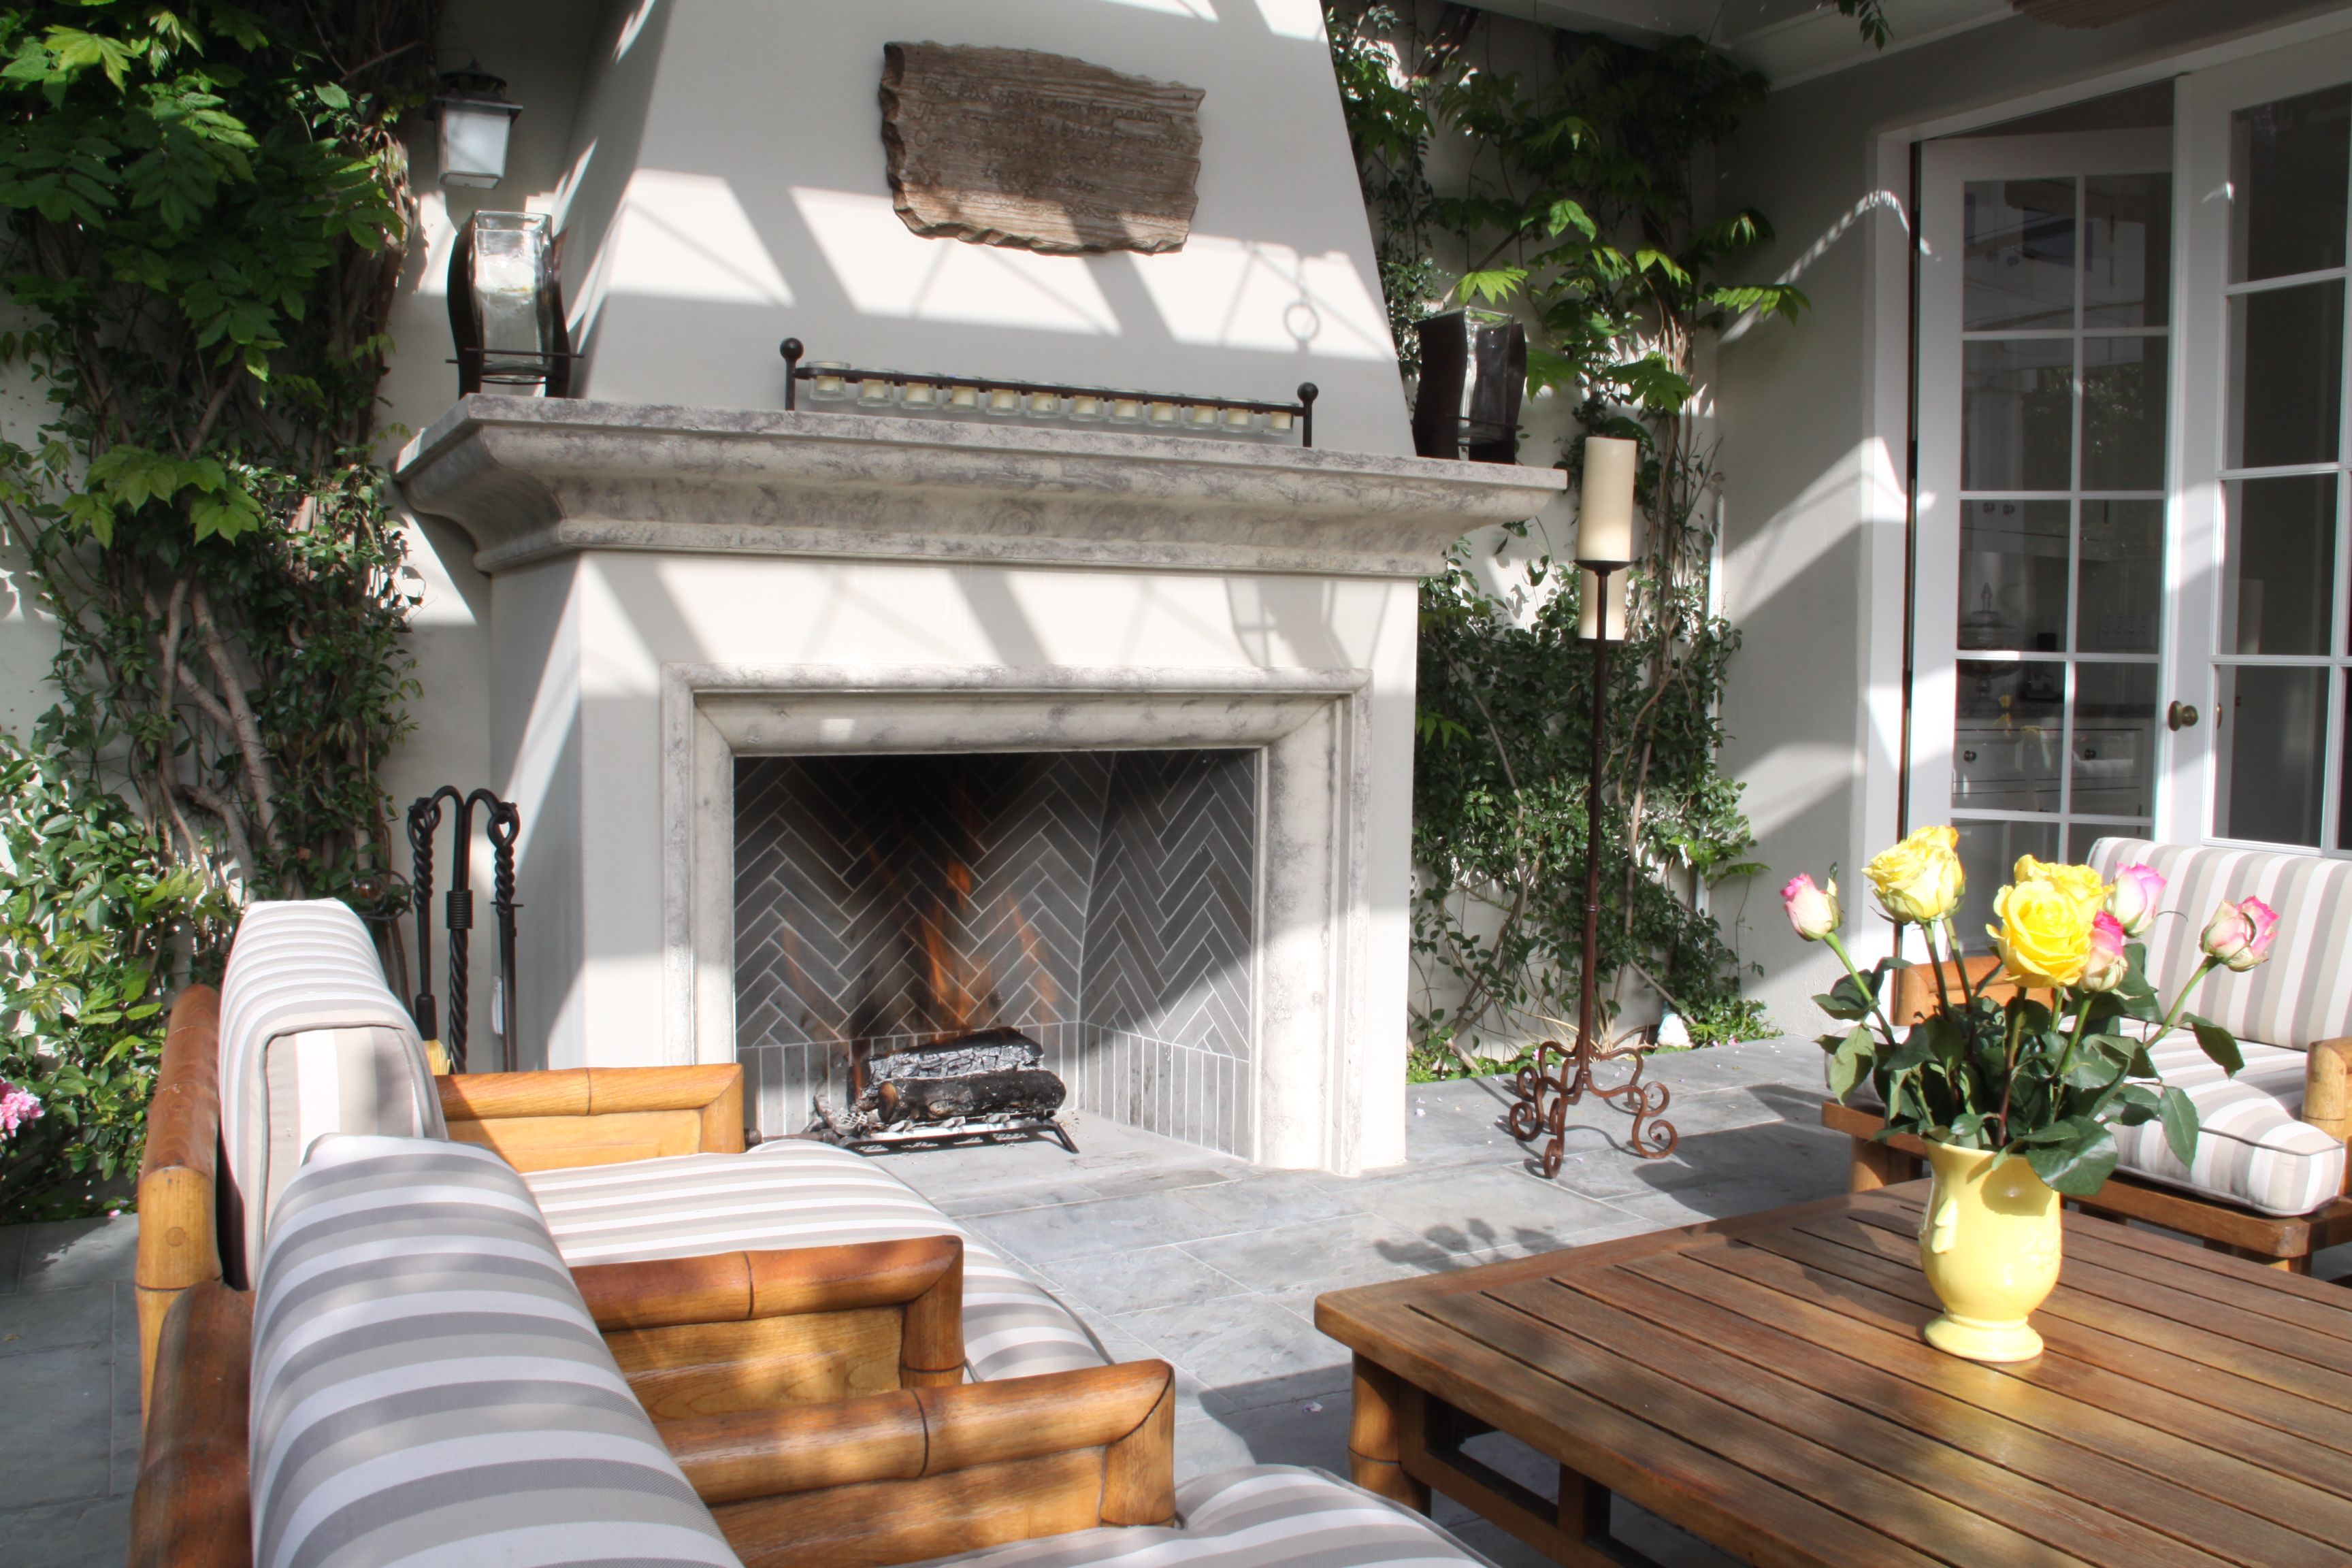 57fcf5fa5f2b6b15117a4e42add06f99 Top Result 50 Awesome Steel Outdoor Fireplace Gallery 2018 Hiw6